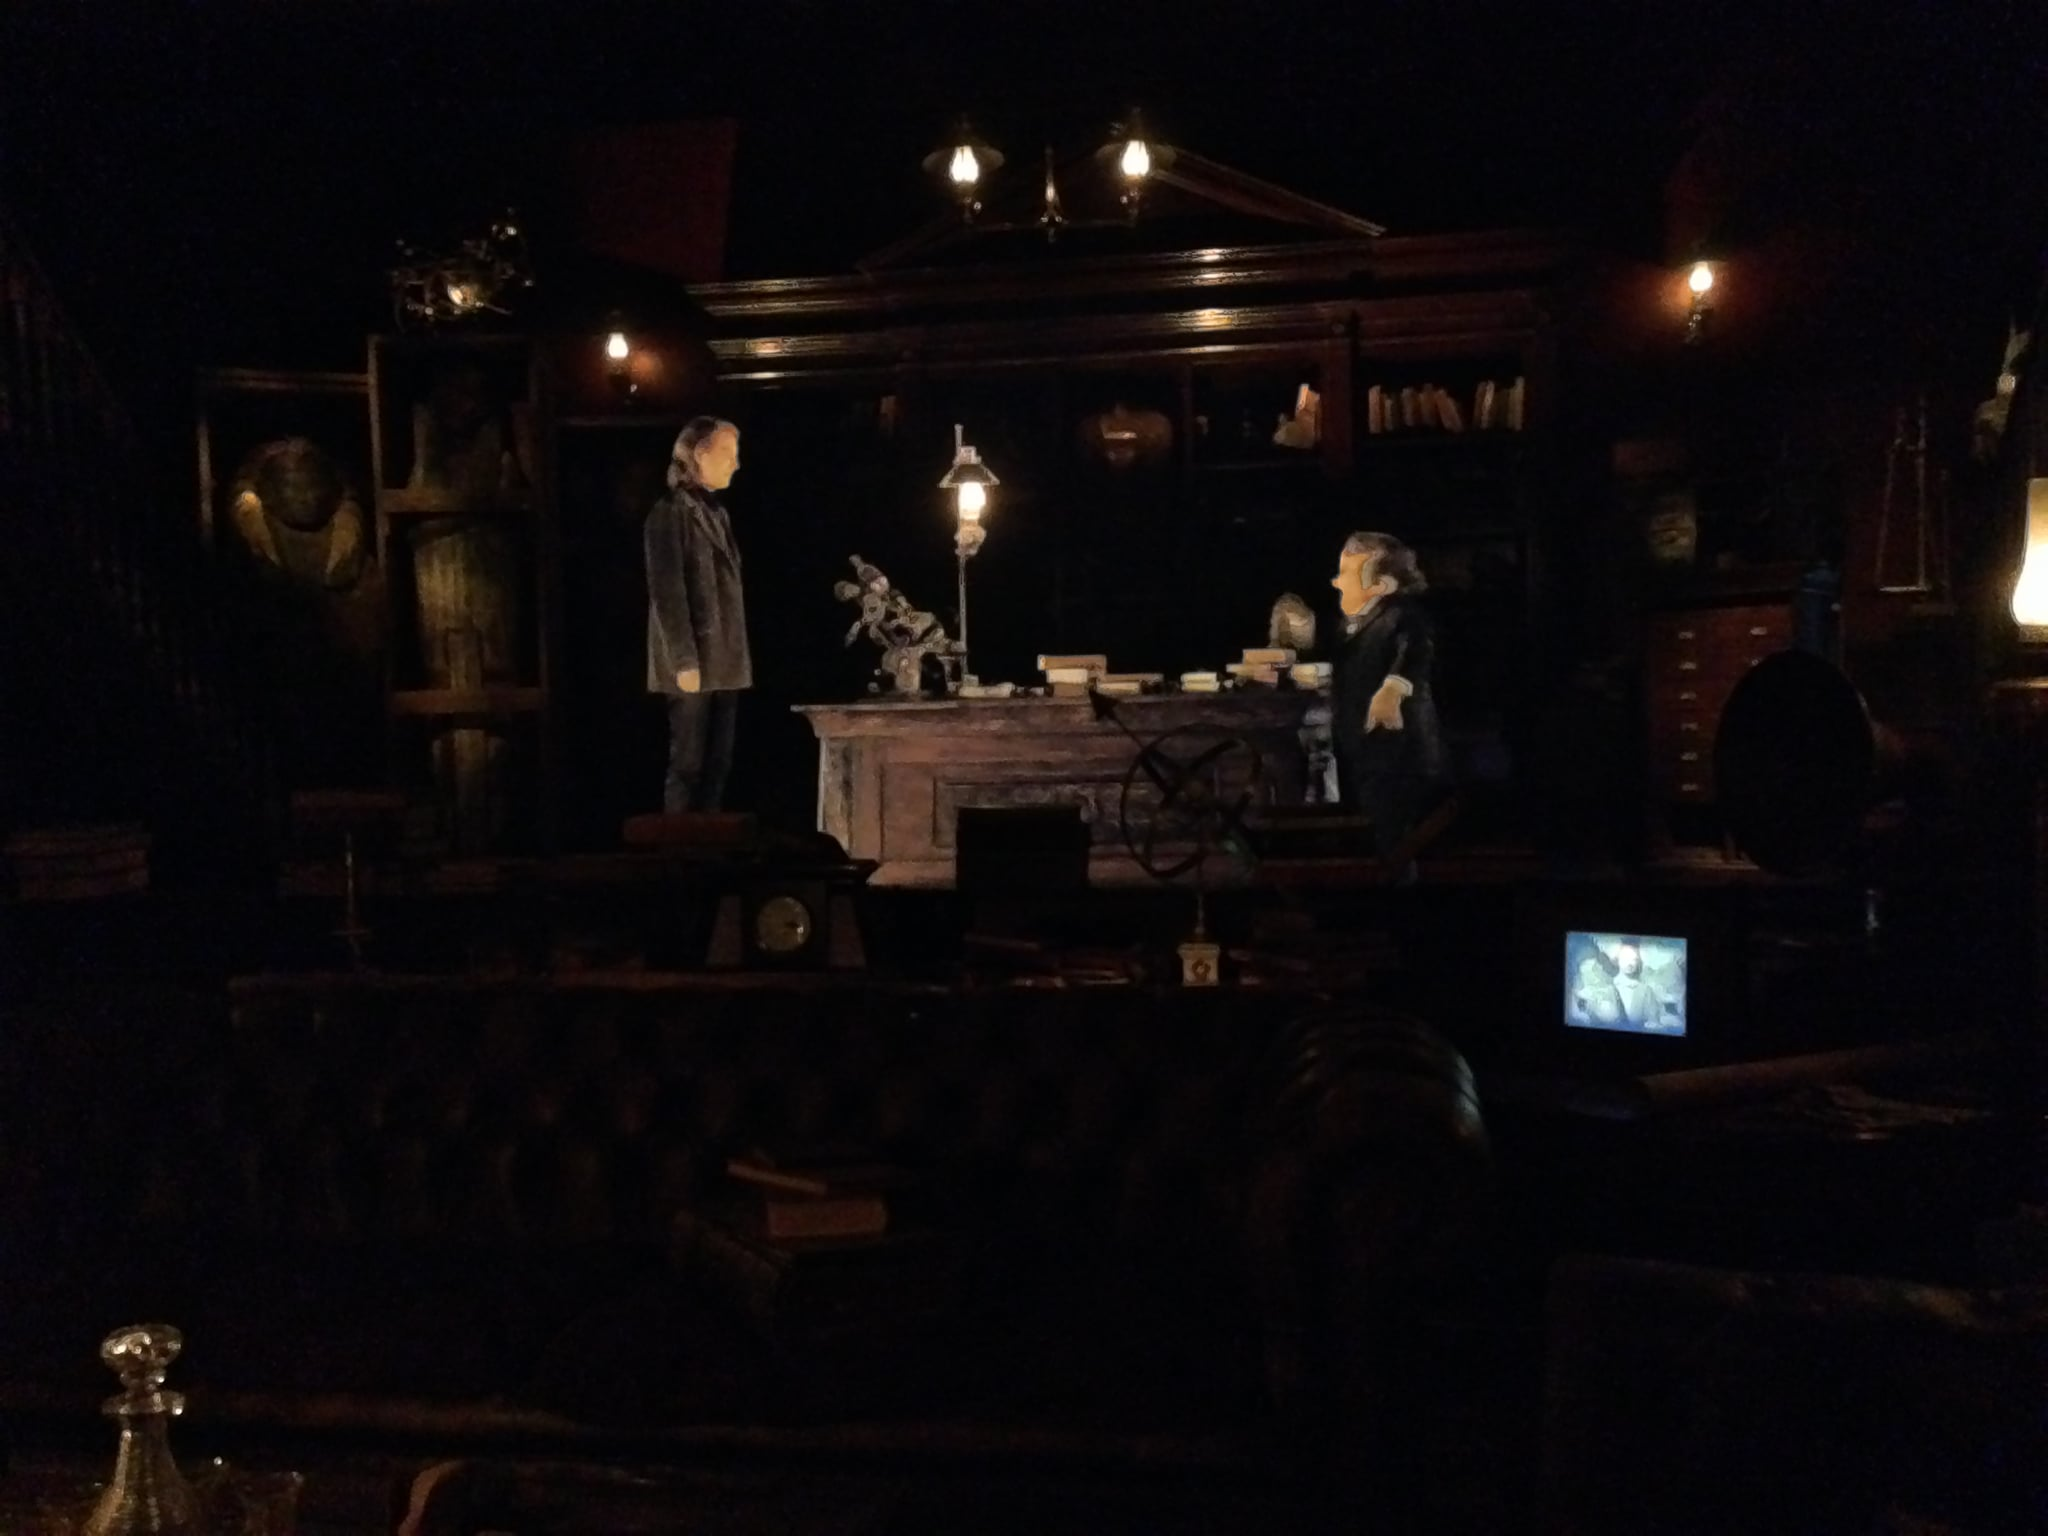 As you progress in the queue for the ride you stop to watch a preshow that takes place in Bill Weasley's office. There are real props in the foreground while the introduction takes place on a screen in the background. You can even see moving portraits of the Weasleys, including the photo of them in Egypt which is featured in the movie.